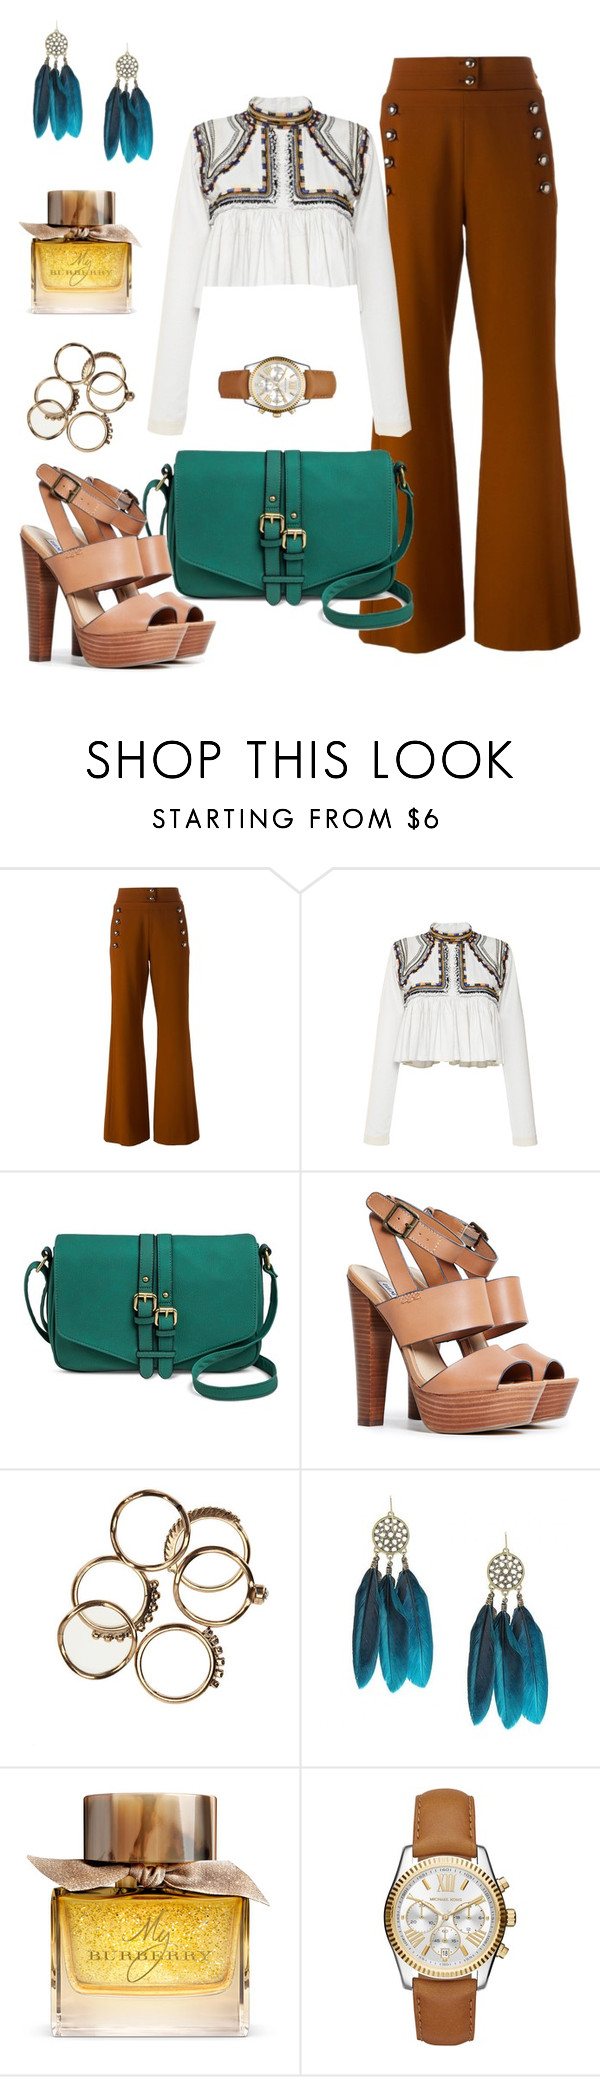 """Texas"" by yinggao ❤ liked on Polyvore featuring Chloé, Isabel Marant, Merona, Steve Madden, Burberry, Michael Kors, women's clothing, women, female and woman"